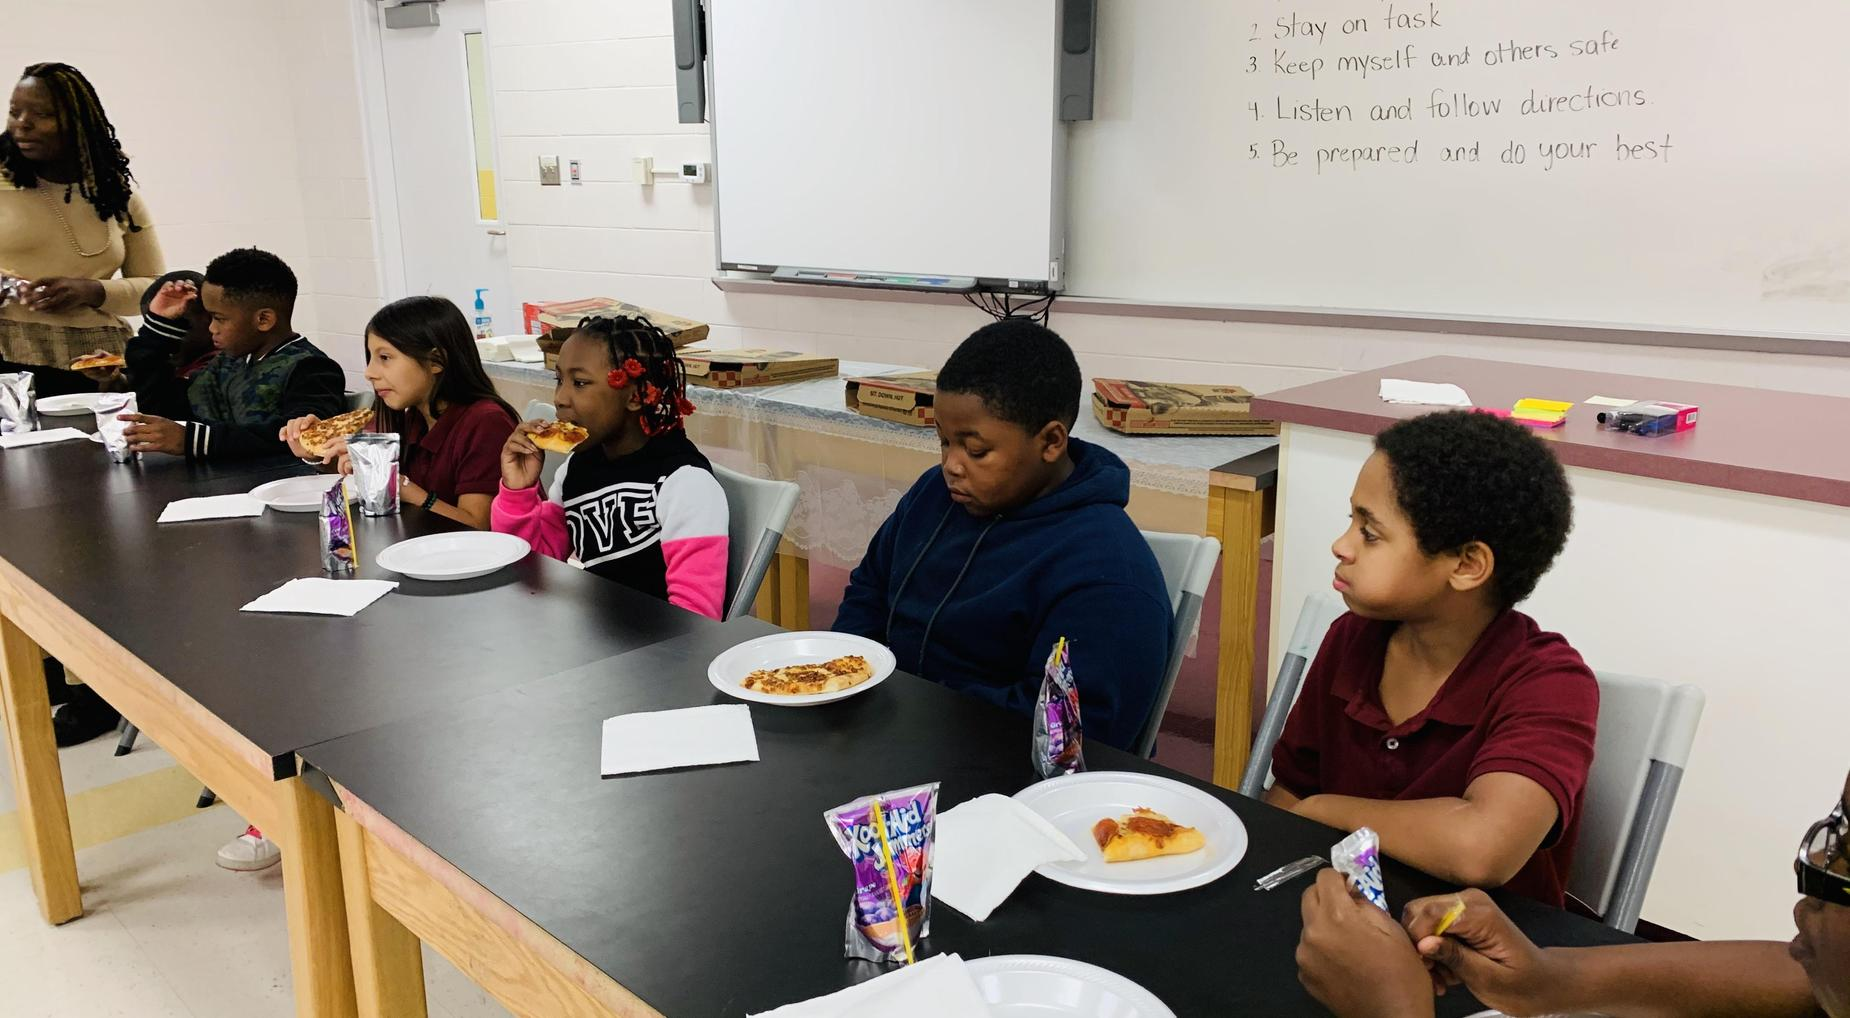 Students enjoying pizza with the principal